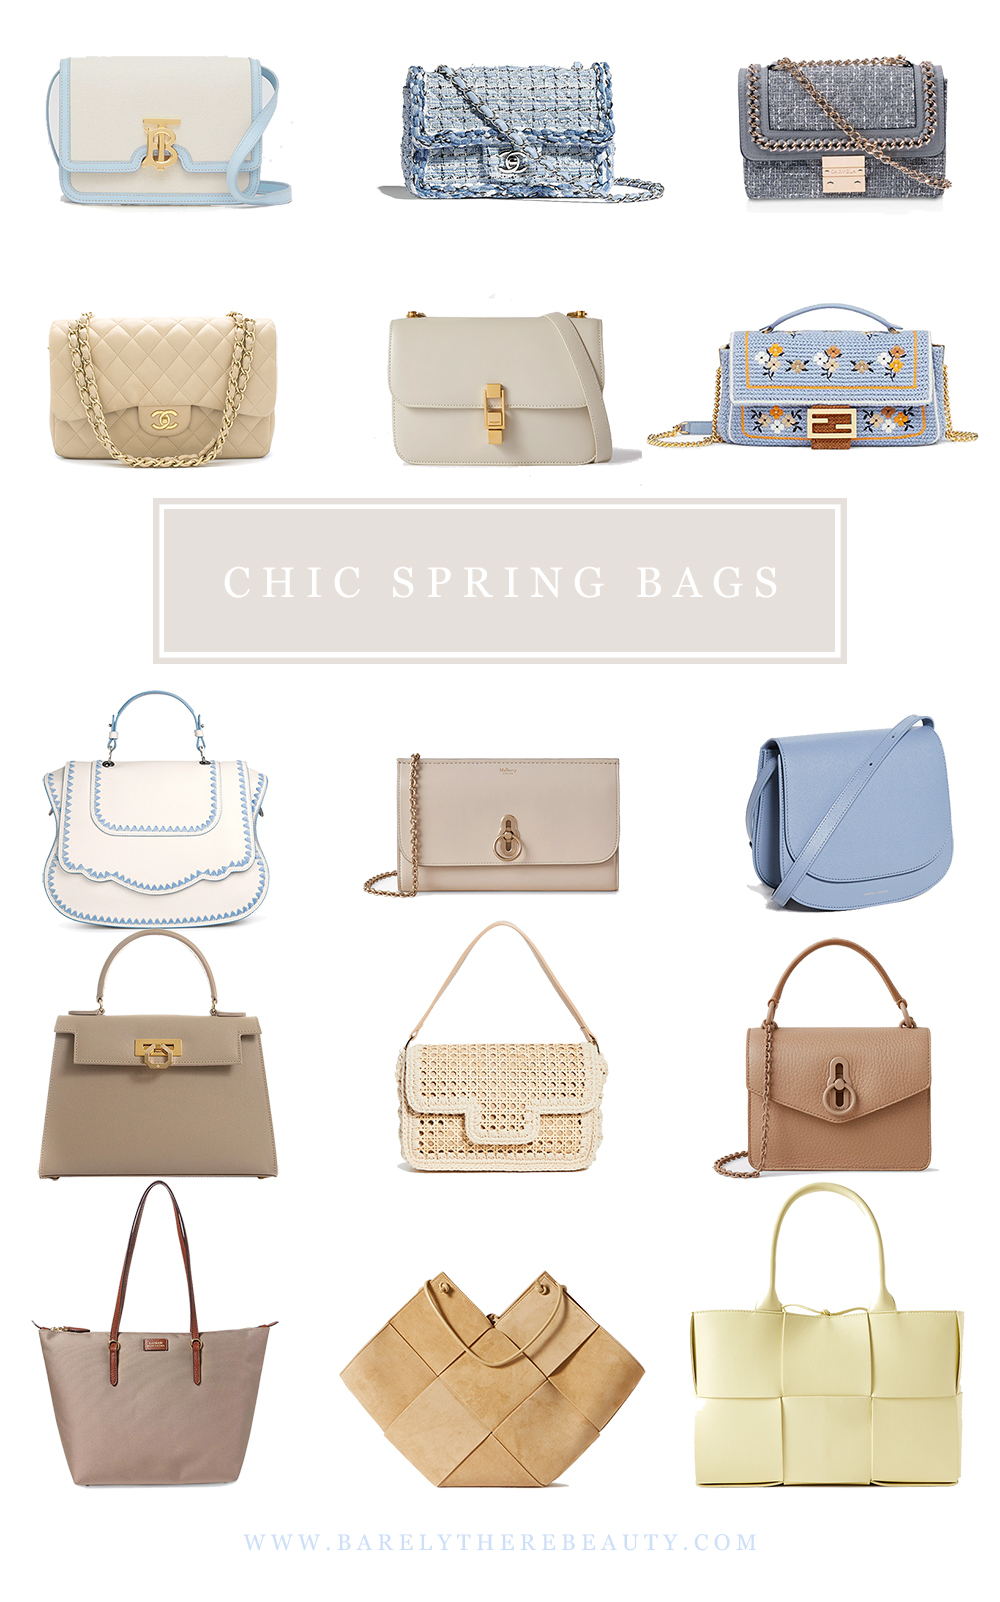 Chic-spring-bags